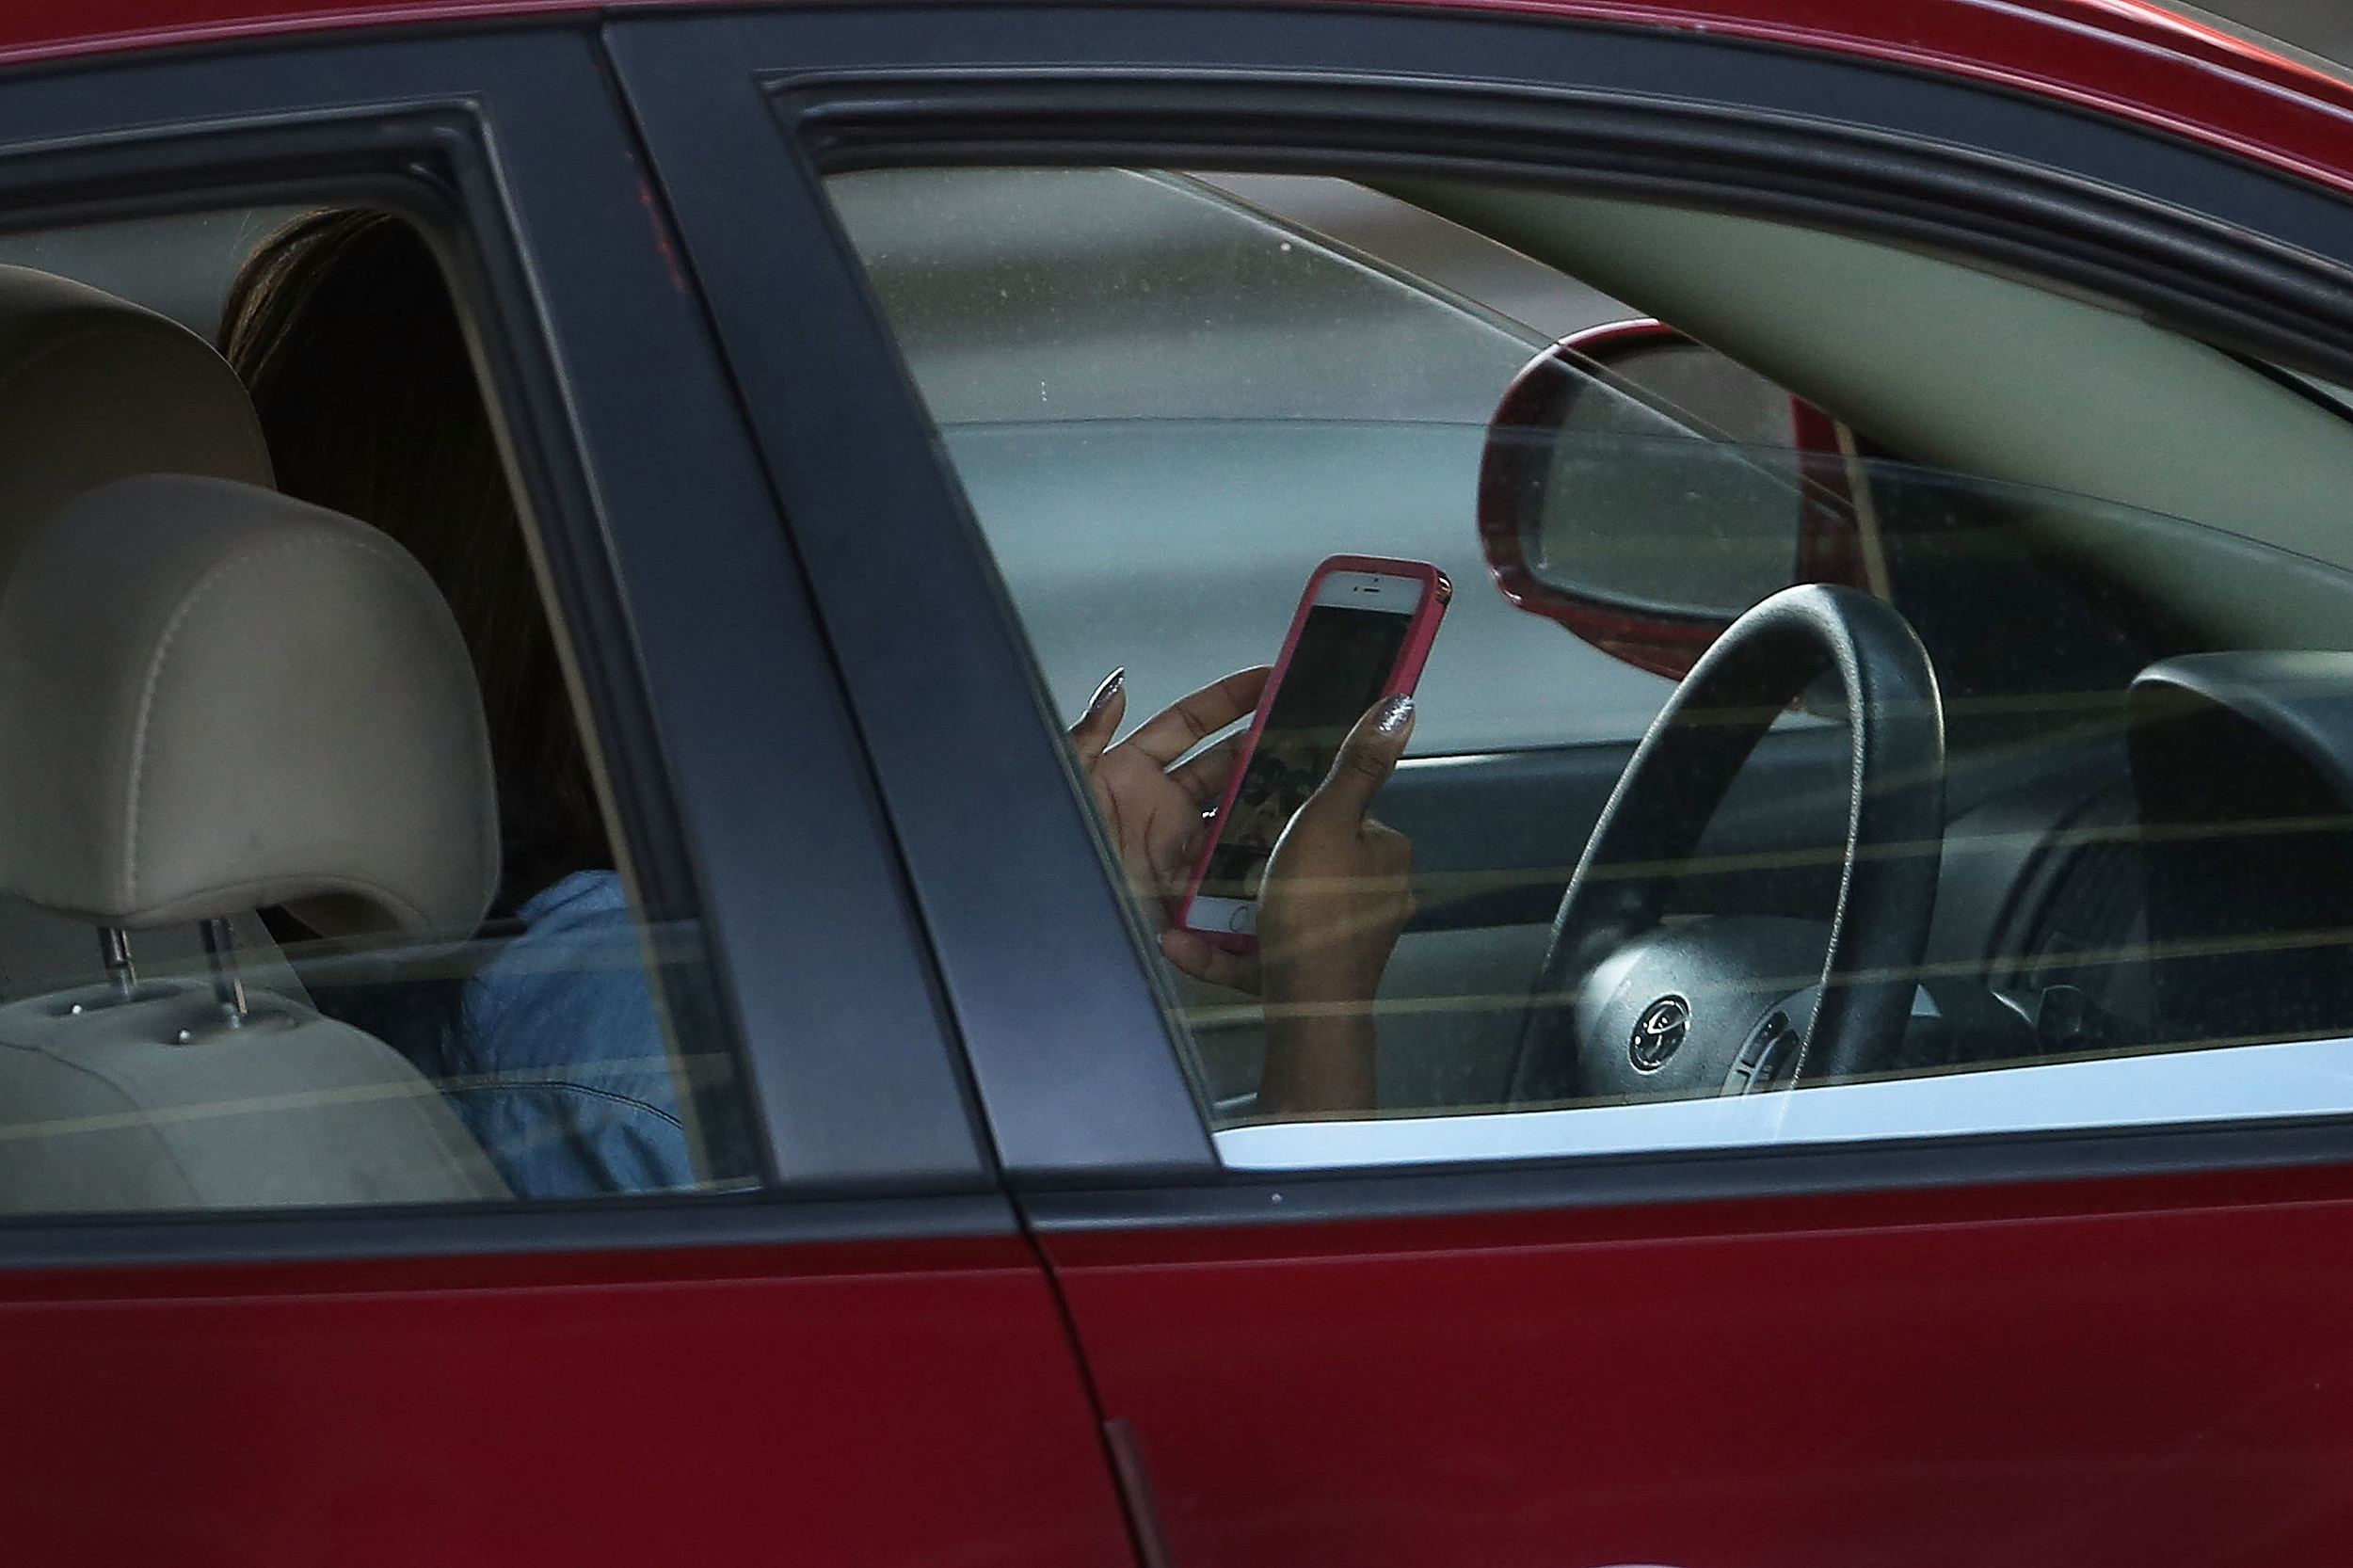 New Law Seeks to Crack Down on Distracted New York Drivers